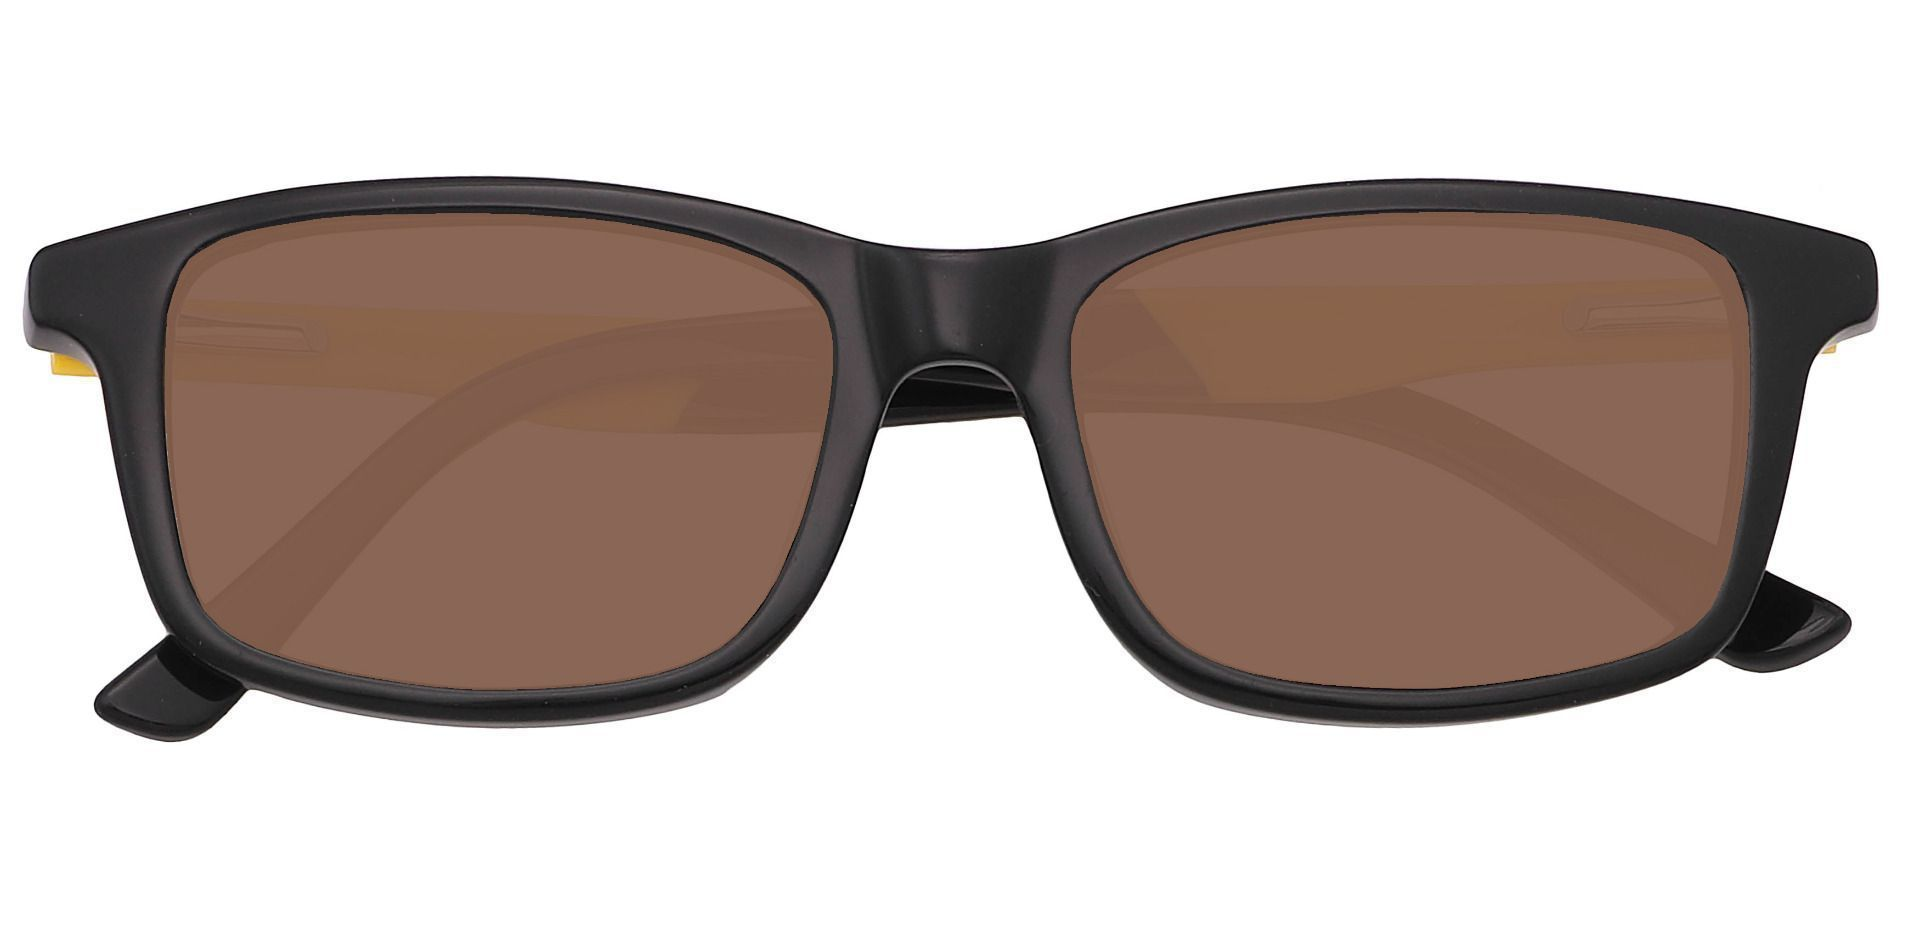 Allegheny Rectangle Single Vision Sunglasses - Black Frame With Brown Lenses